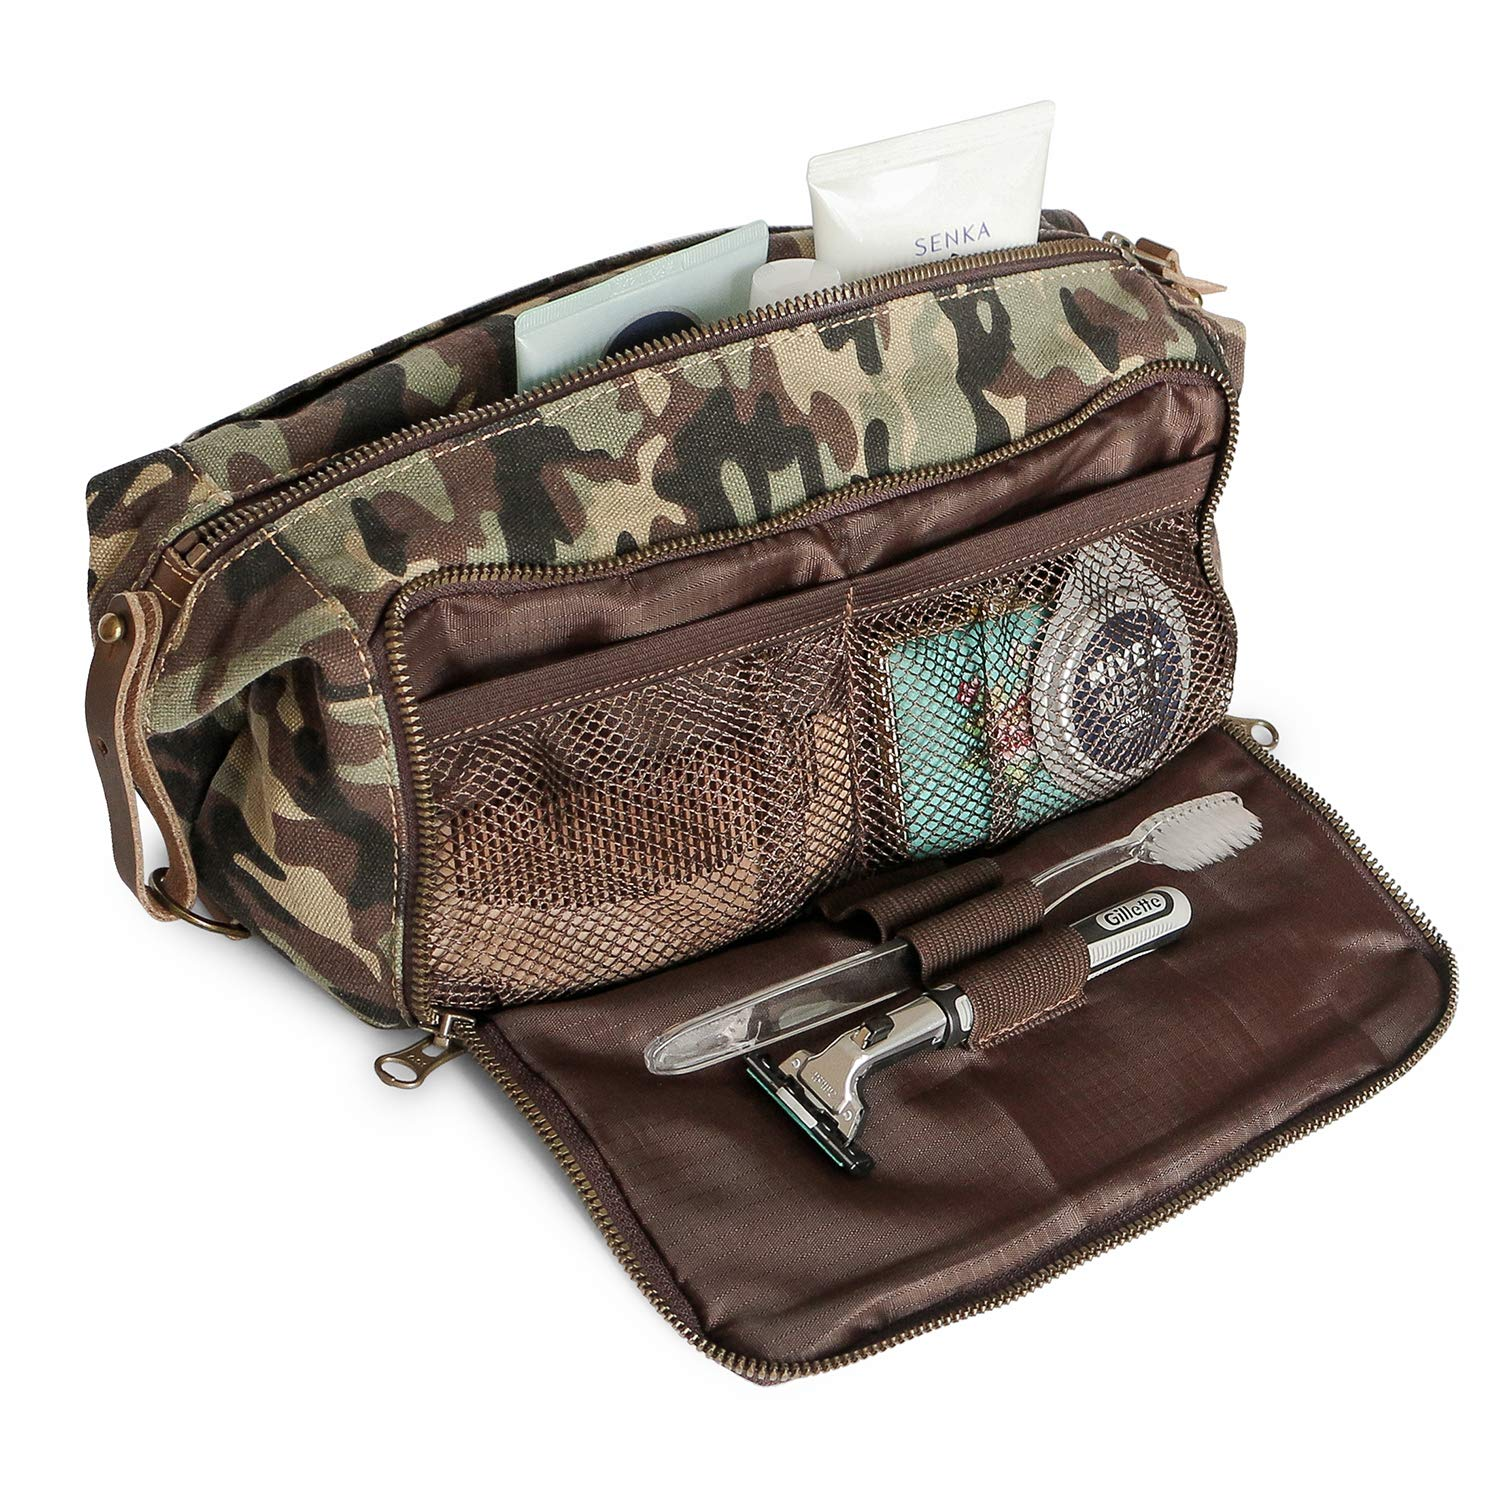 e78d7bb713 Amazon.com   DOPP Kit Mens Toiletry Travel Bag YKK Zipper Canvas   Leather  (Large